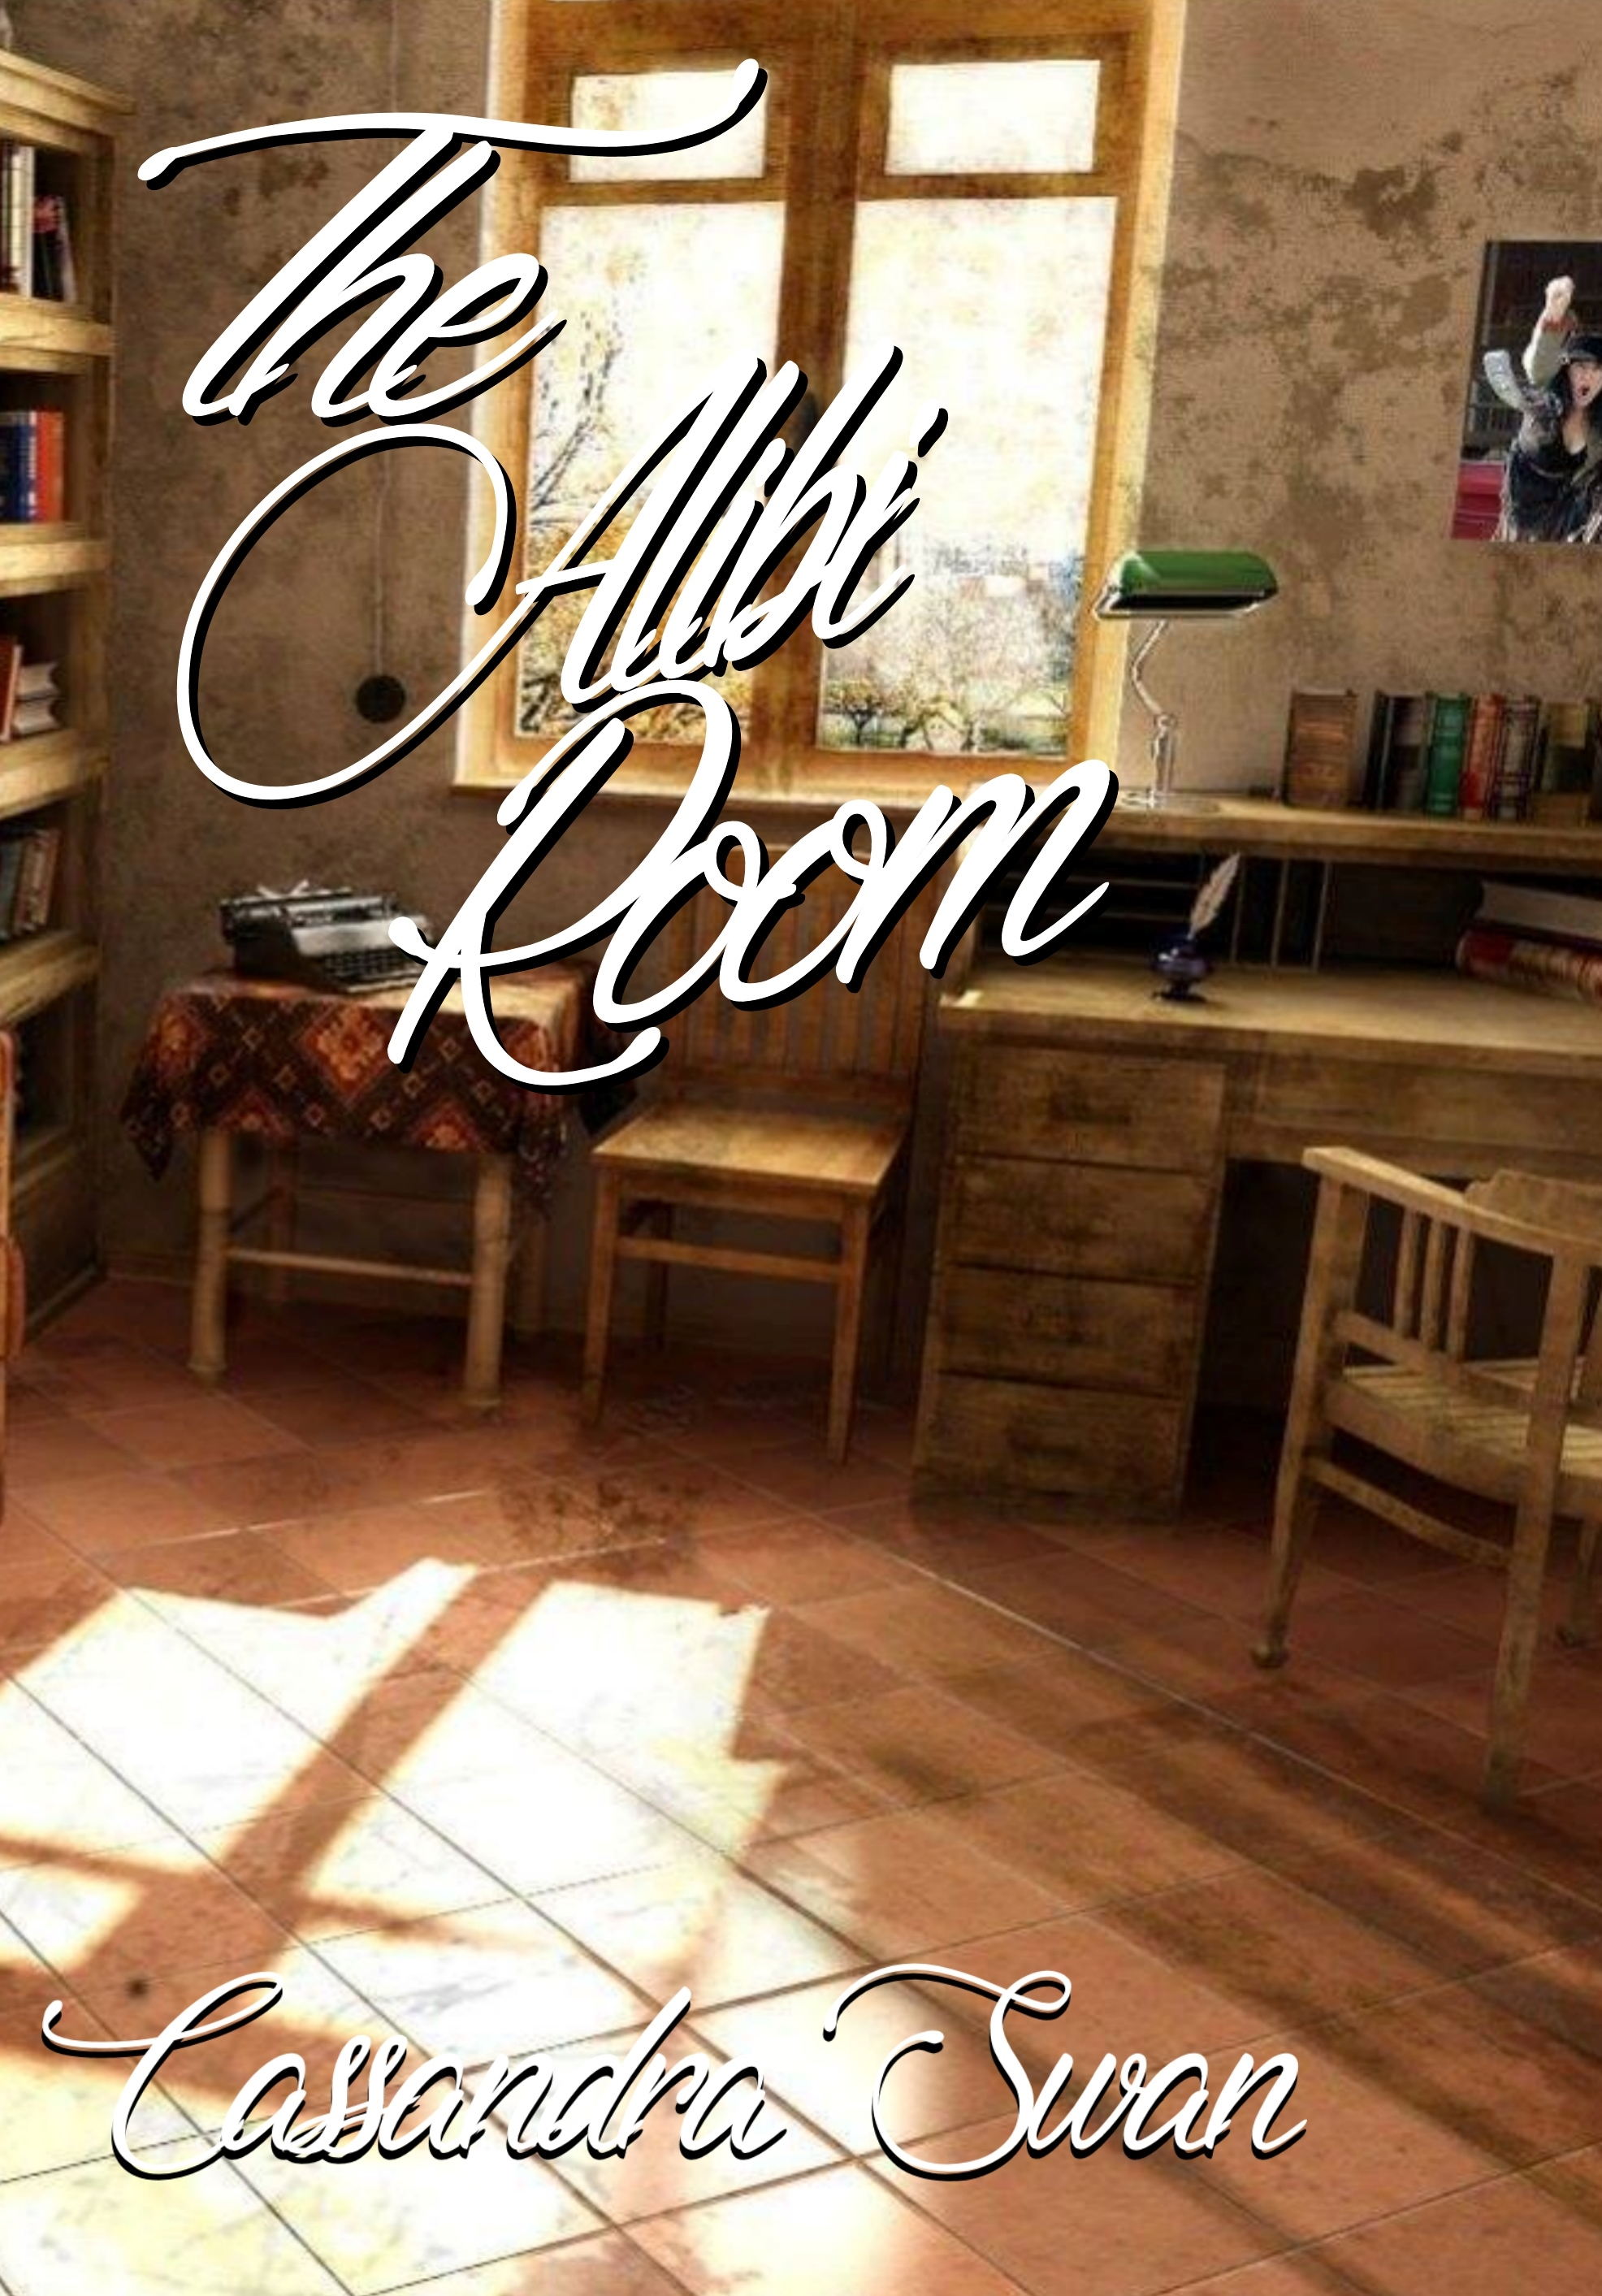 The Alibi Room by Cassandra Swan Pictures: Ian Treherne